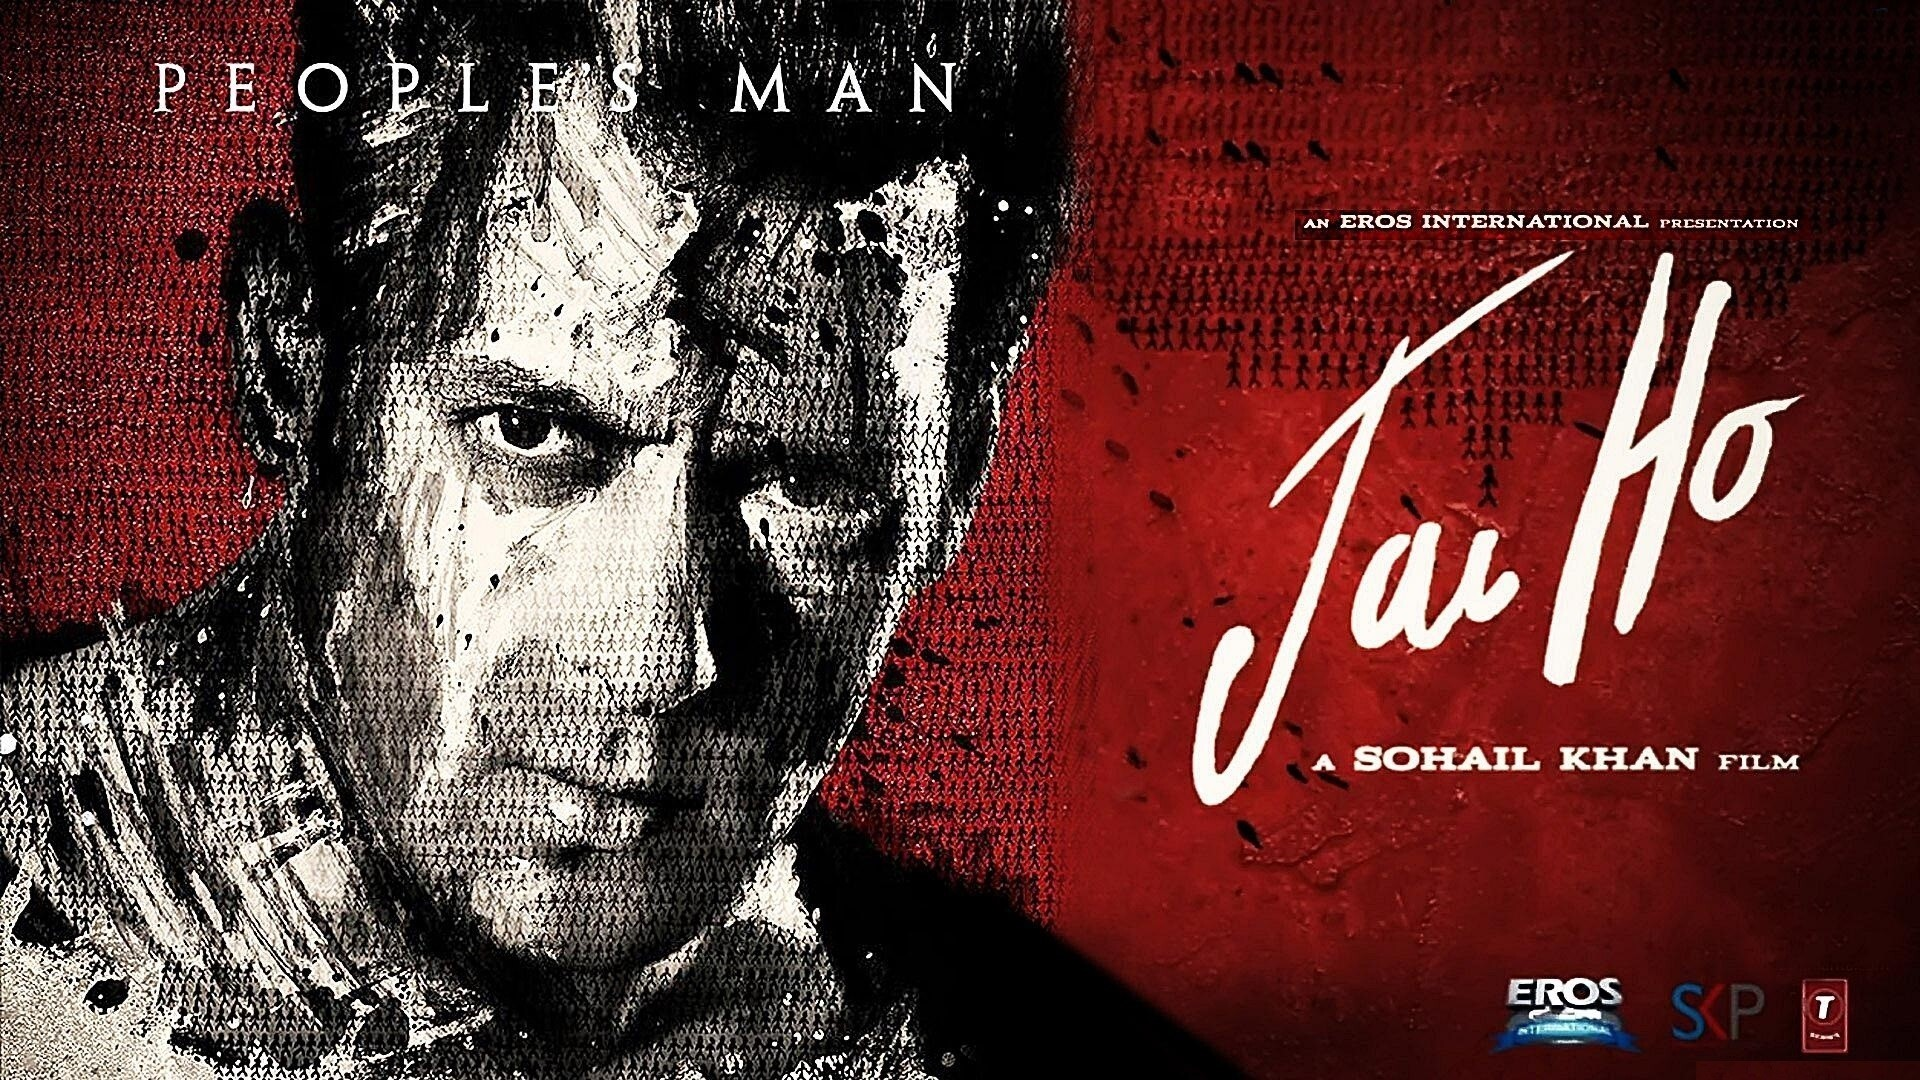 Jai Ho Upcoming 2014 Bollywood Movie Poster Hd Wallpapers